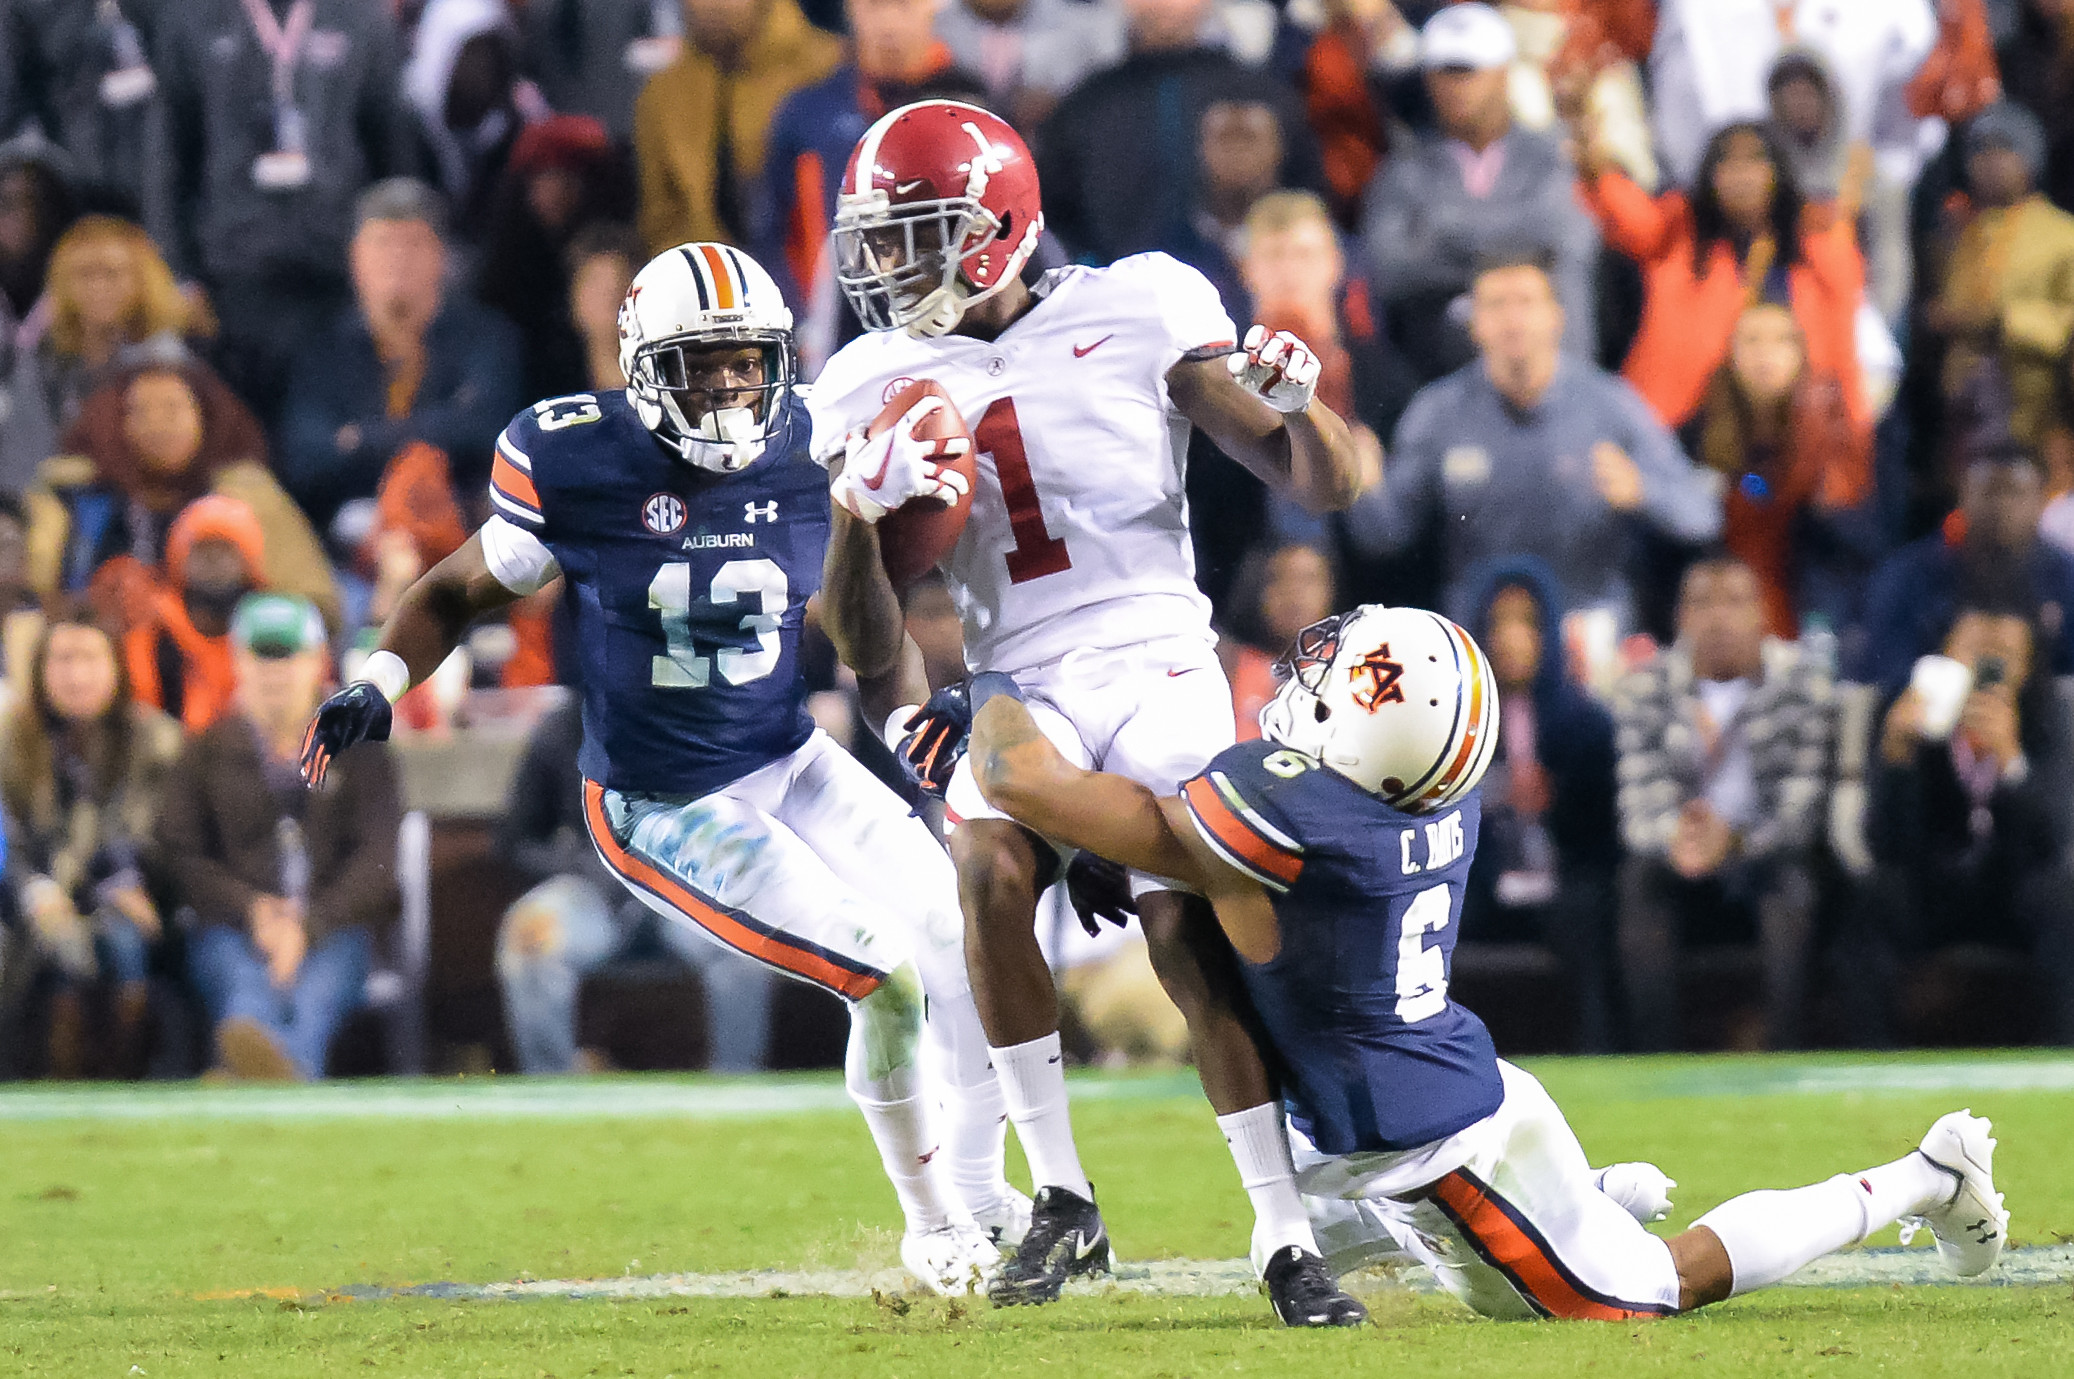 Alabama Crimson Tide wide receiver Robert Foster (1) is tackled by Auburn Tigers defensive back Carlton Davis (6) during the second half of Saturday's game, at Jordan-Hare Stadium.